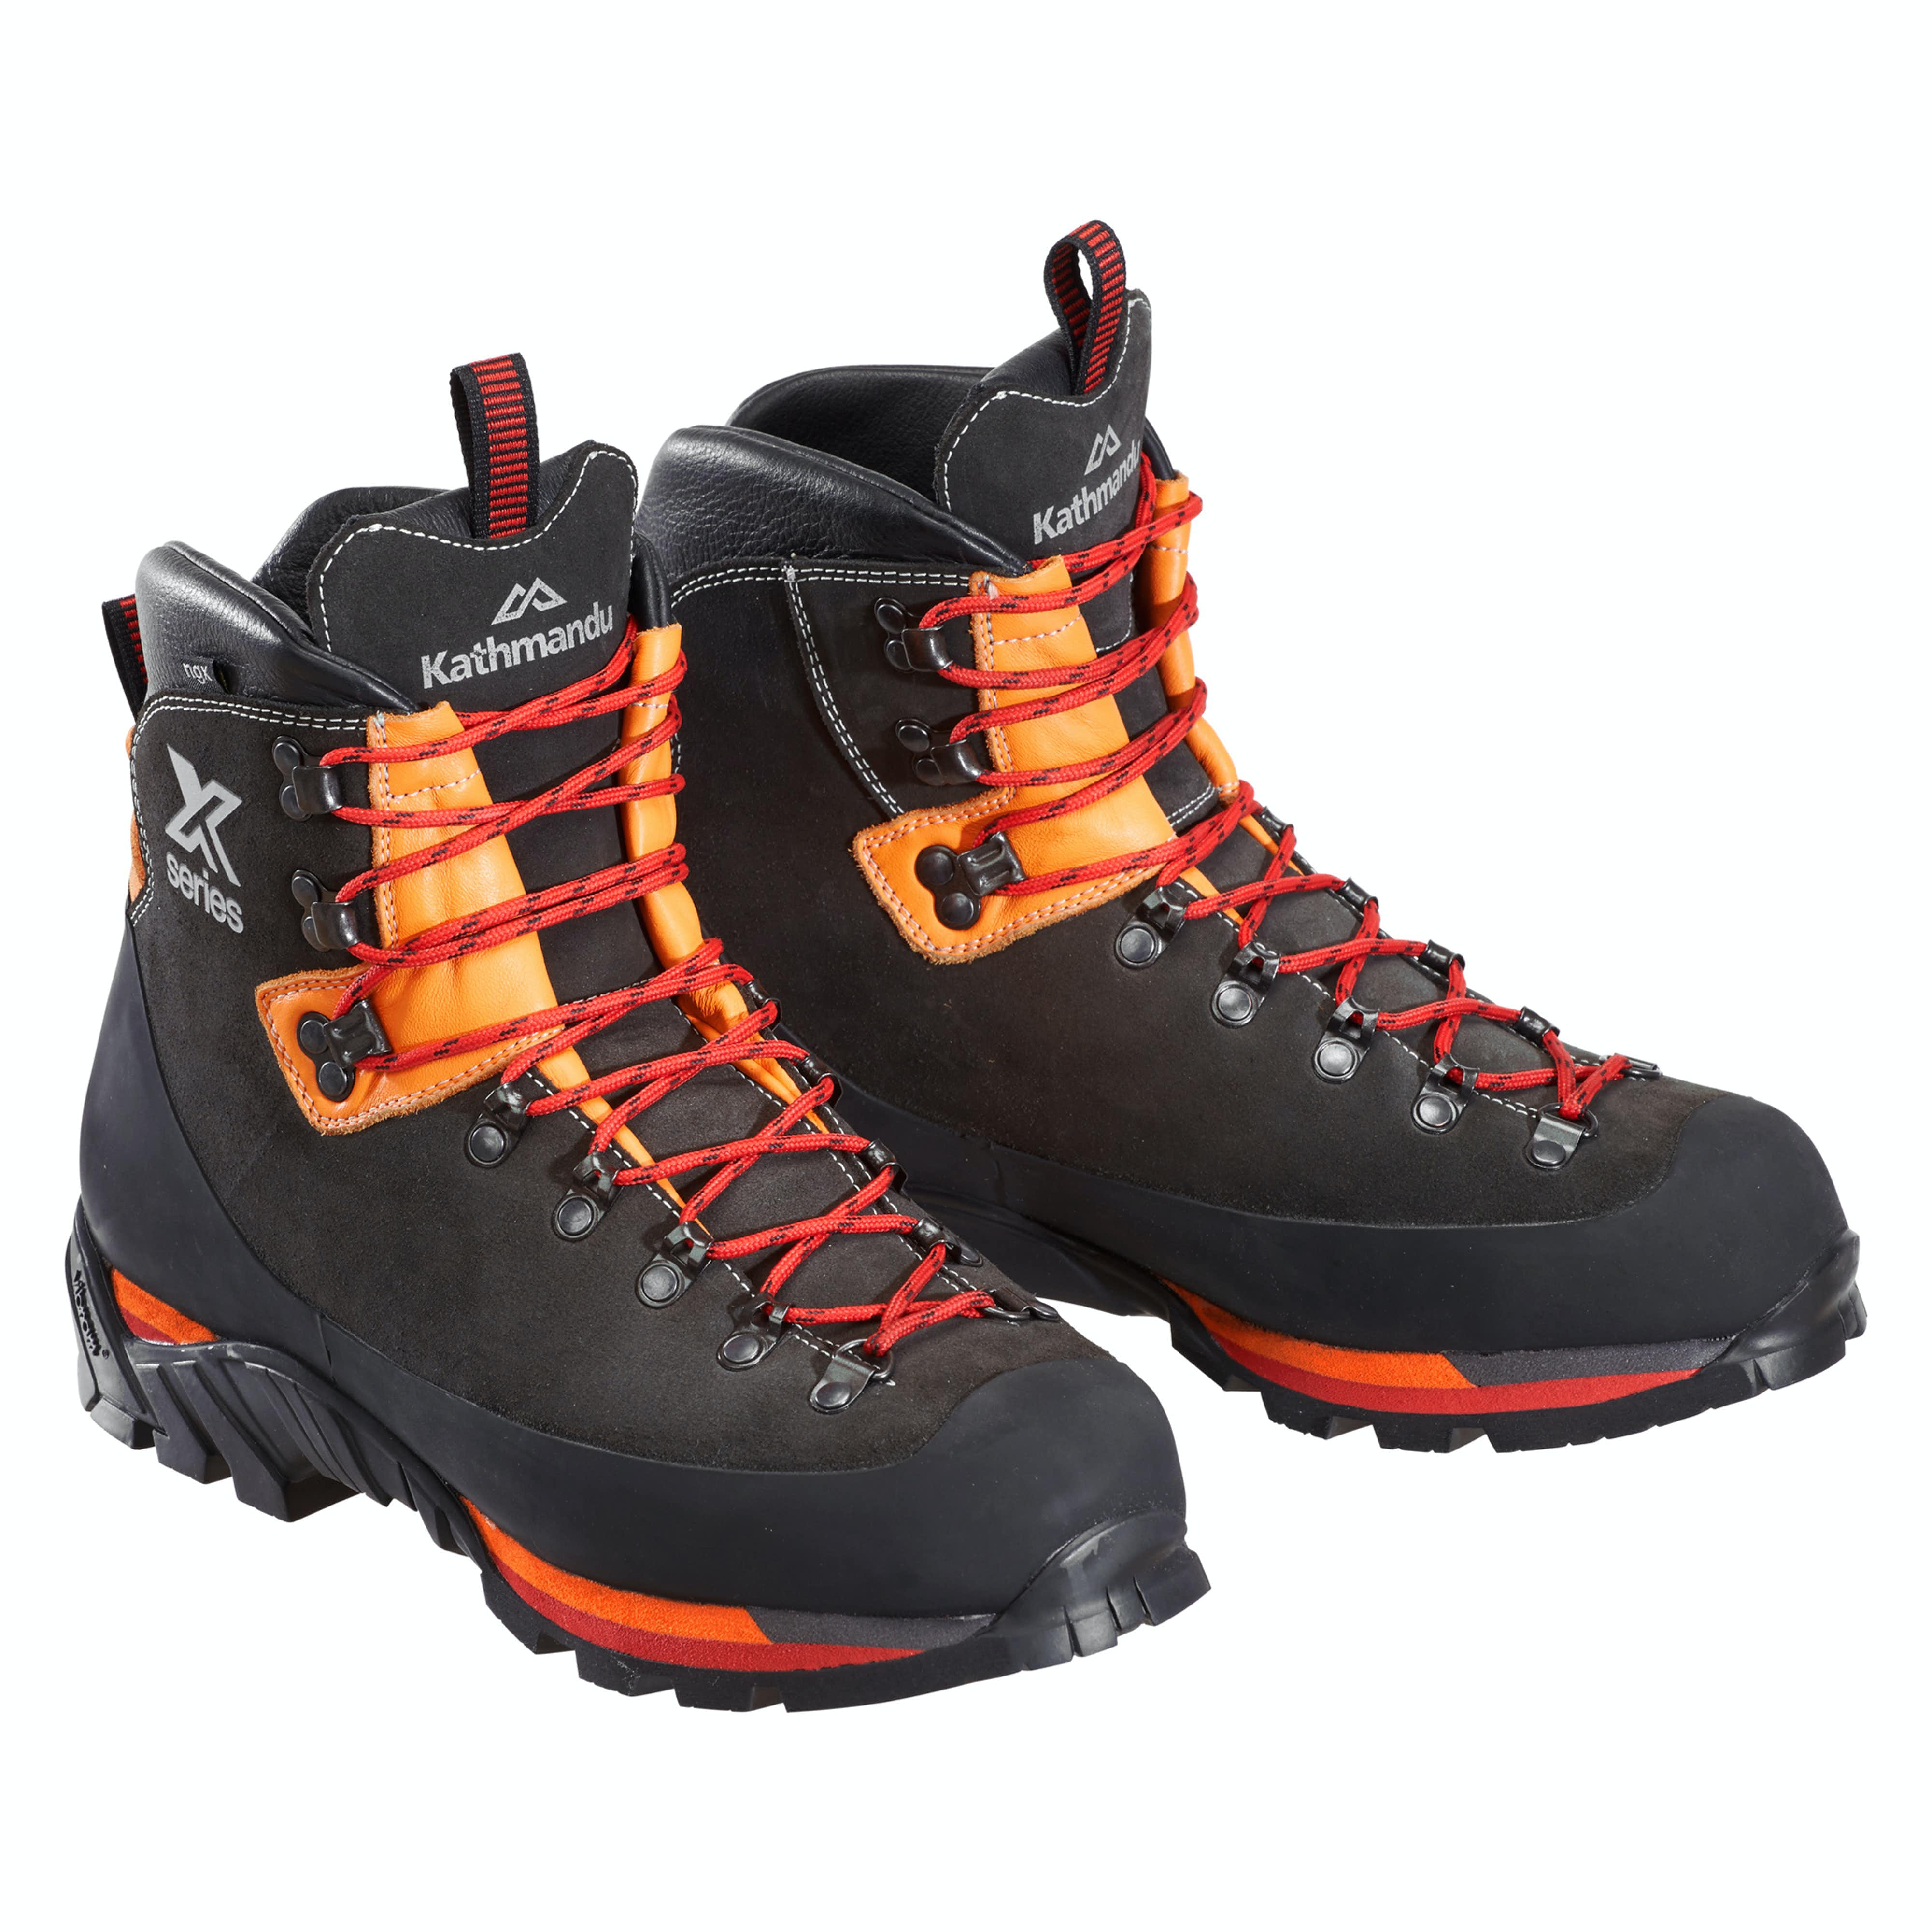 Hiking Boots for Men   Waterproof Mens Hiking Boots for Sale